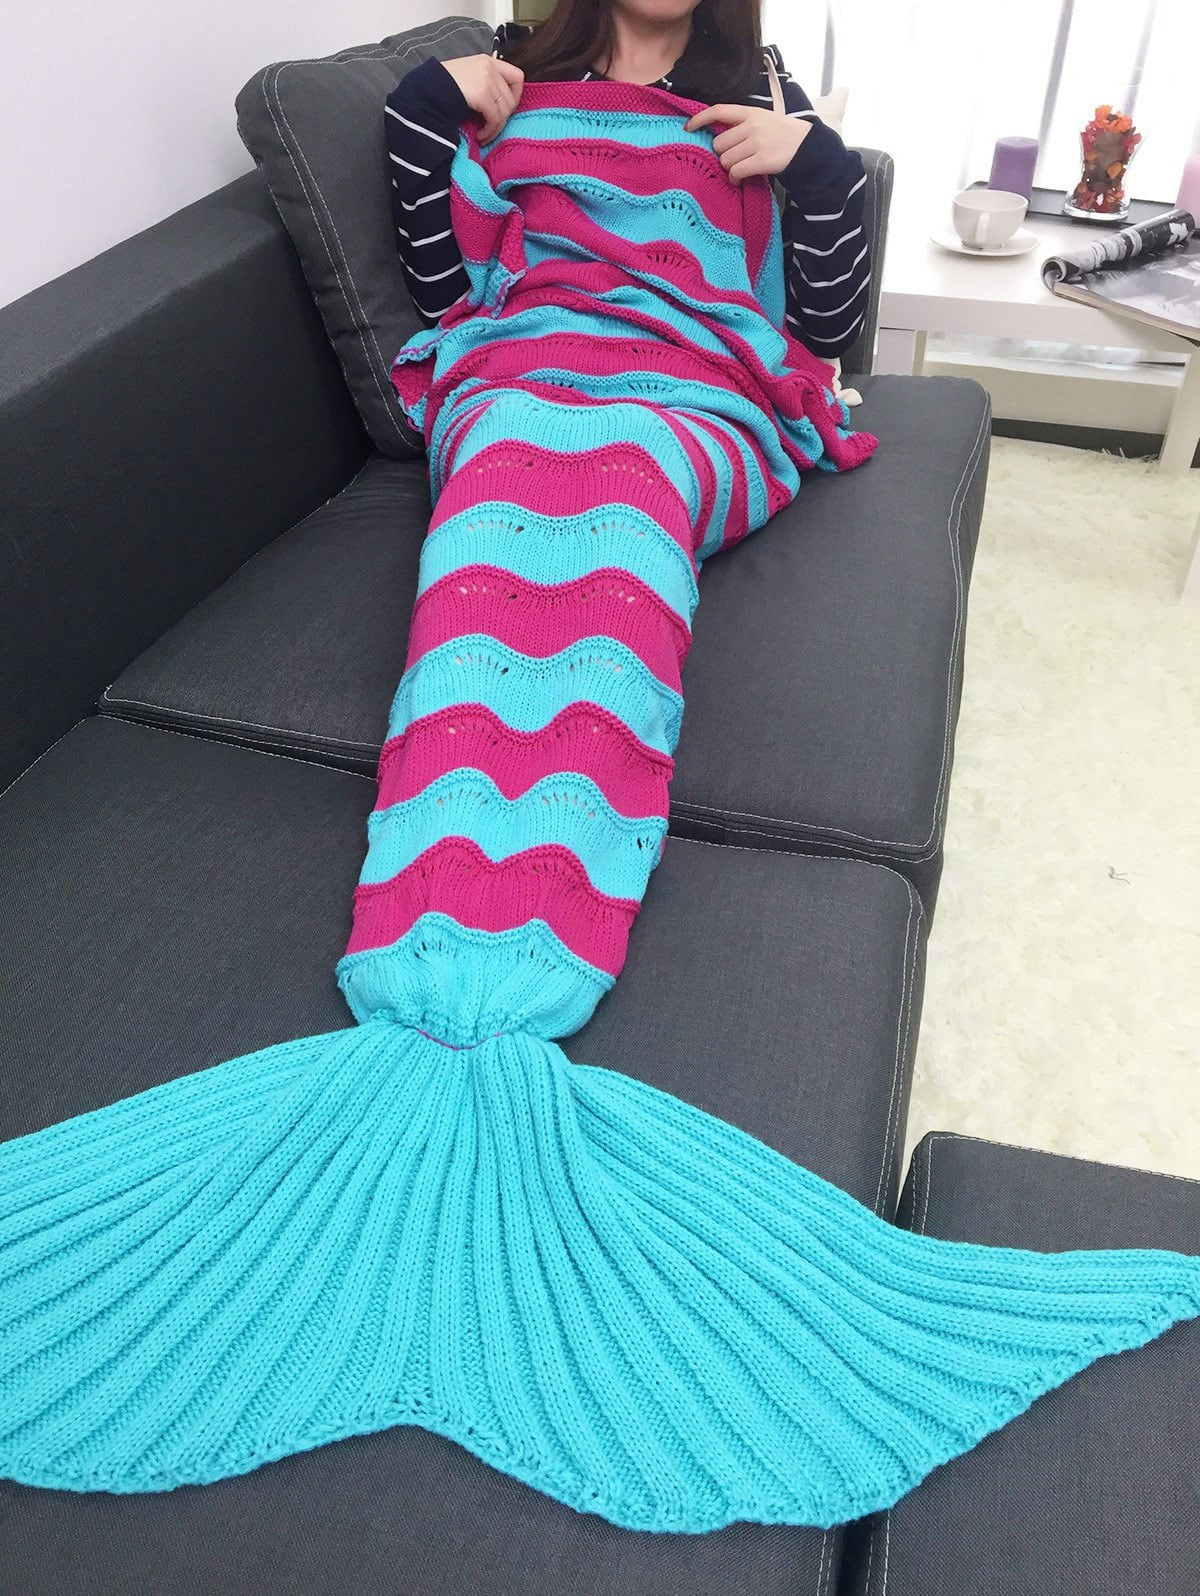 Warmth Stripe Multicolo Pattern Knitting Mermaid Tail